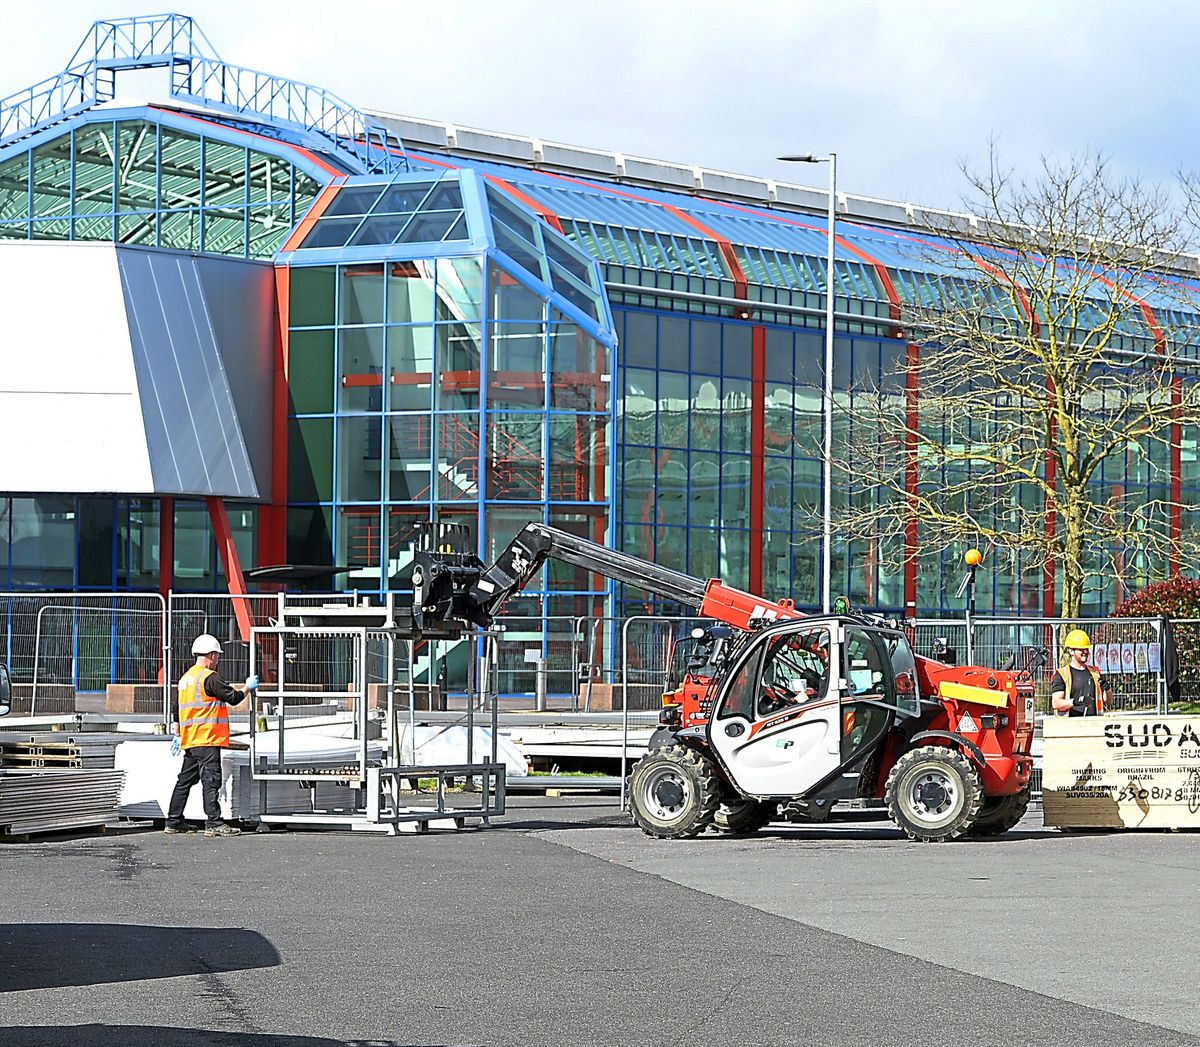 Work continues tat the NEC to create a temporary hospital during the coronavirus pandemic